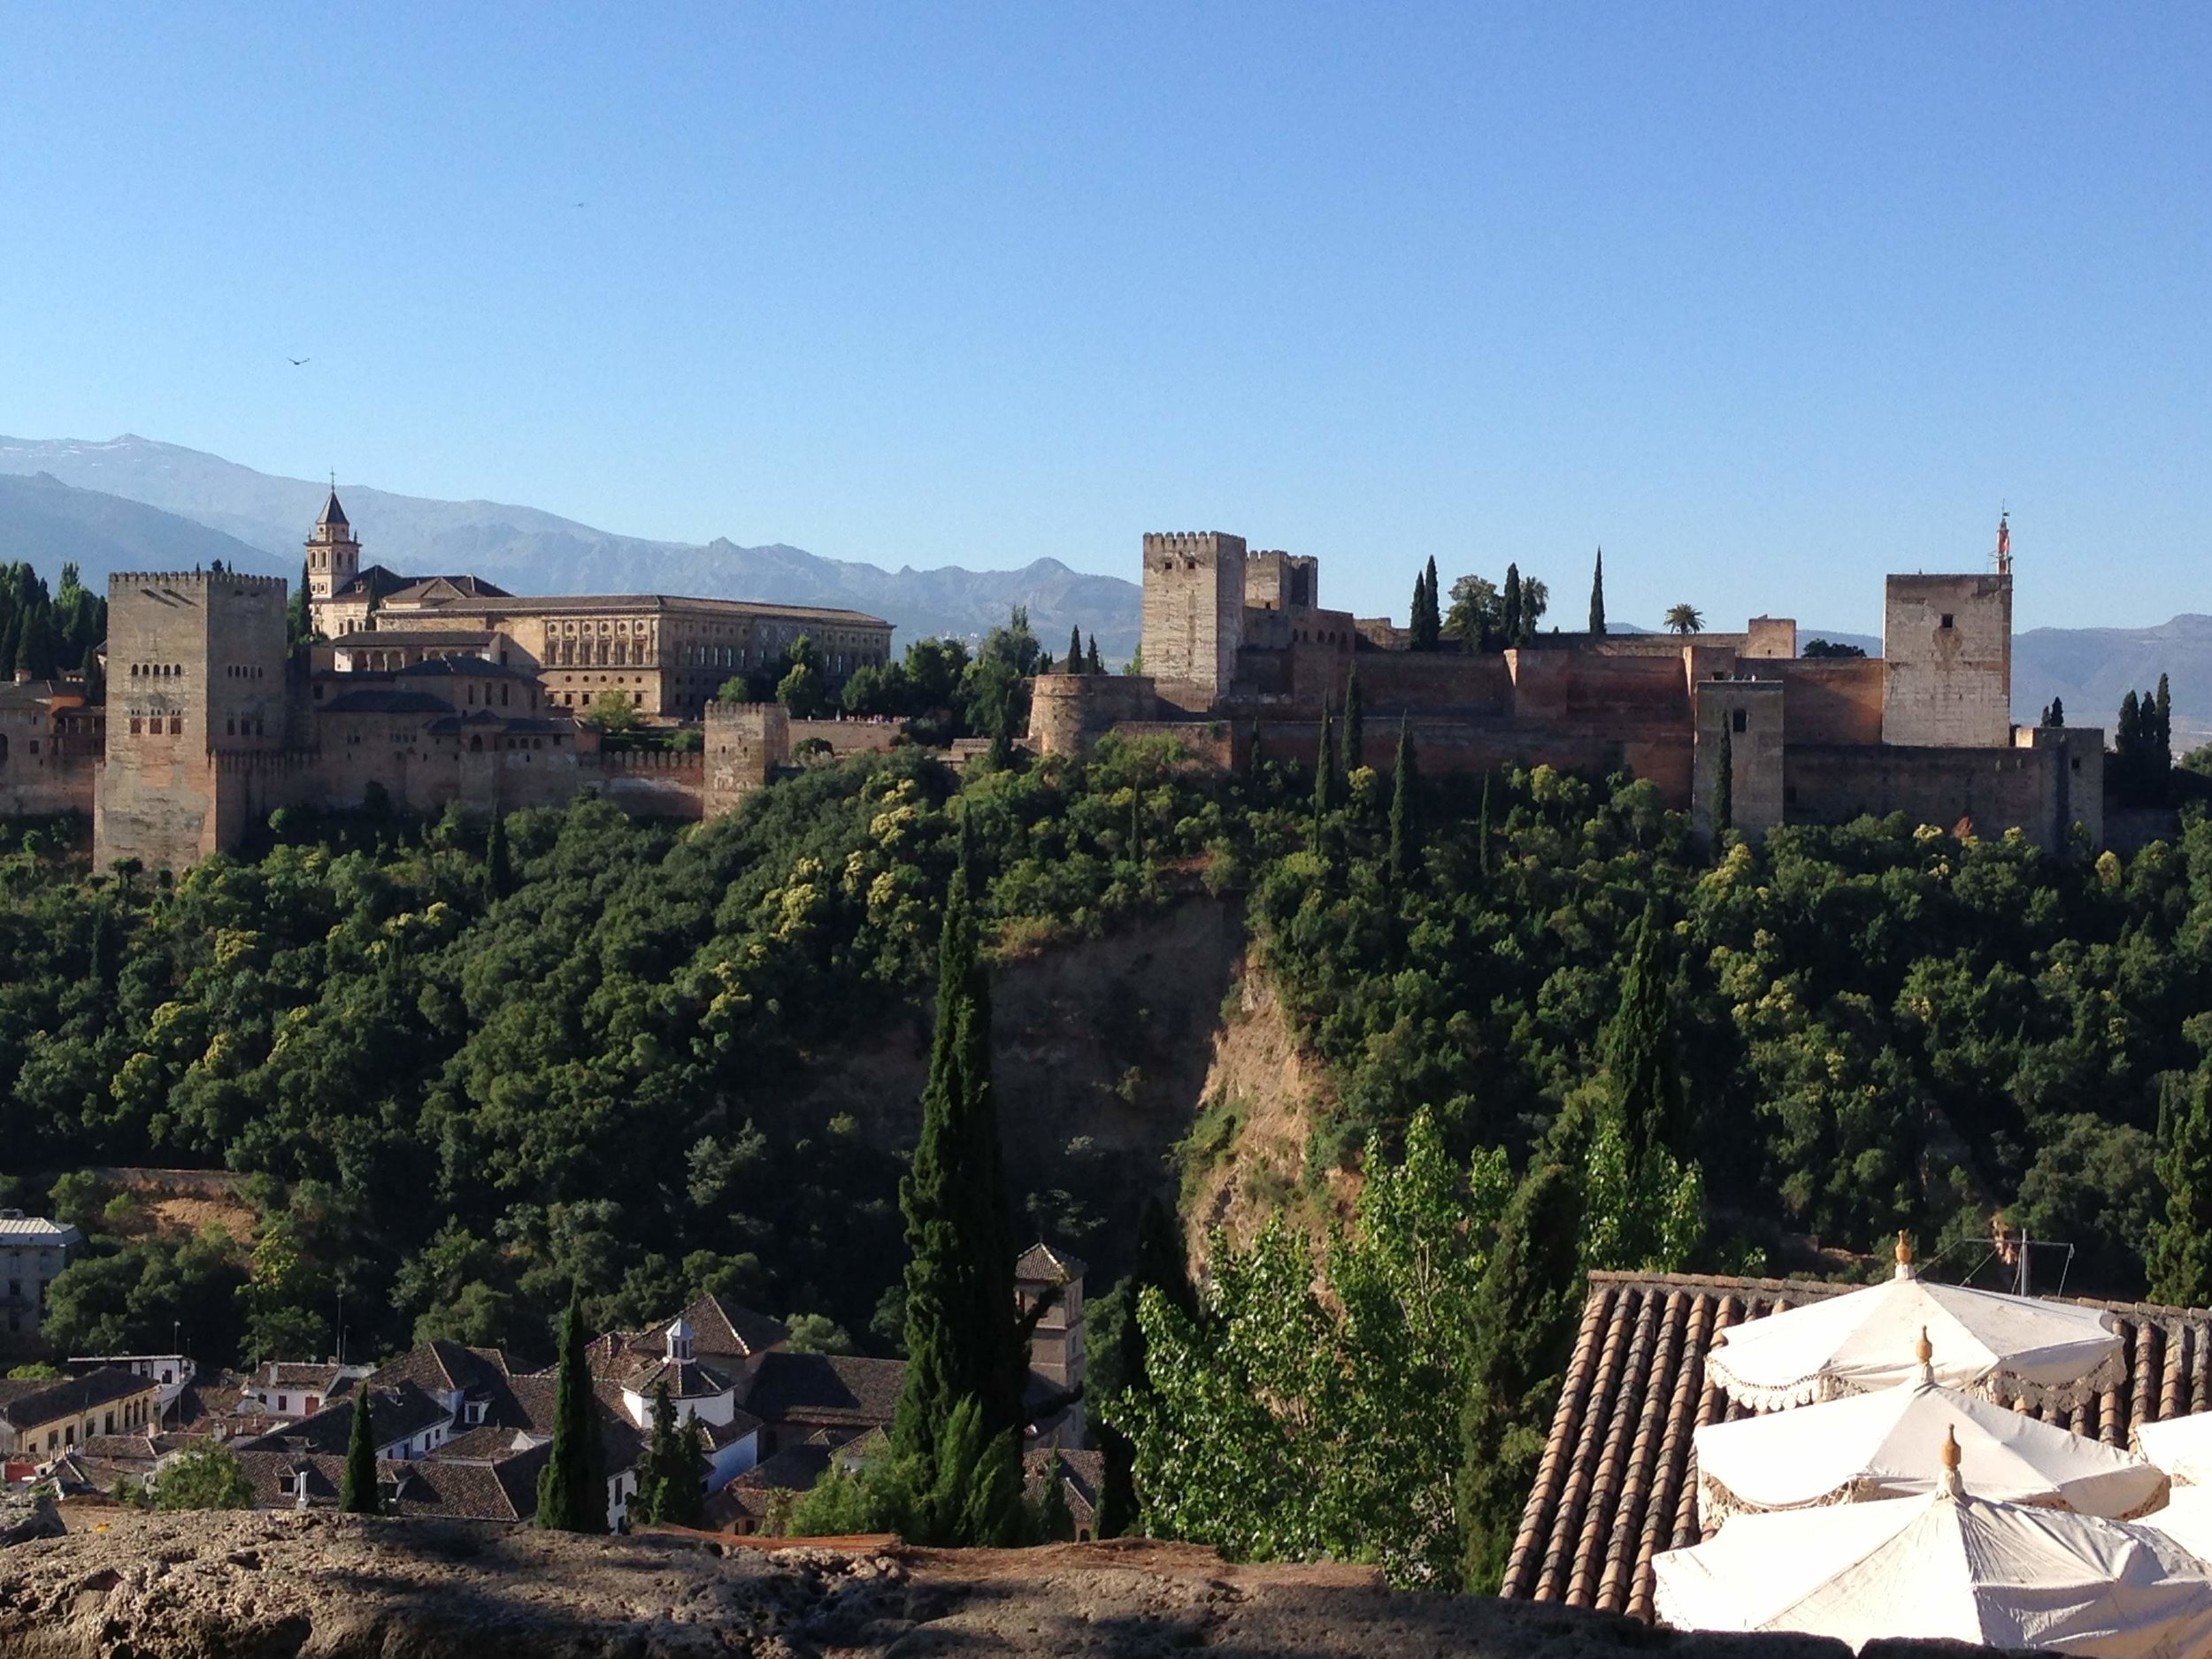 The Alhambra Palace viewed from opposite hill